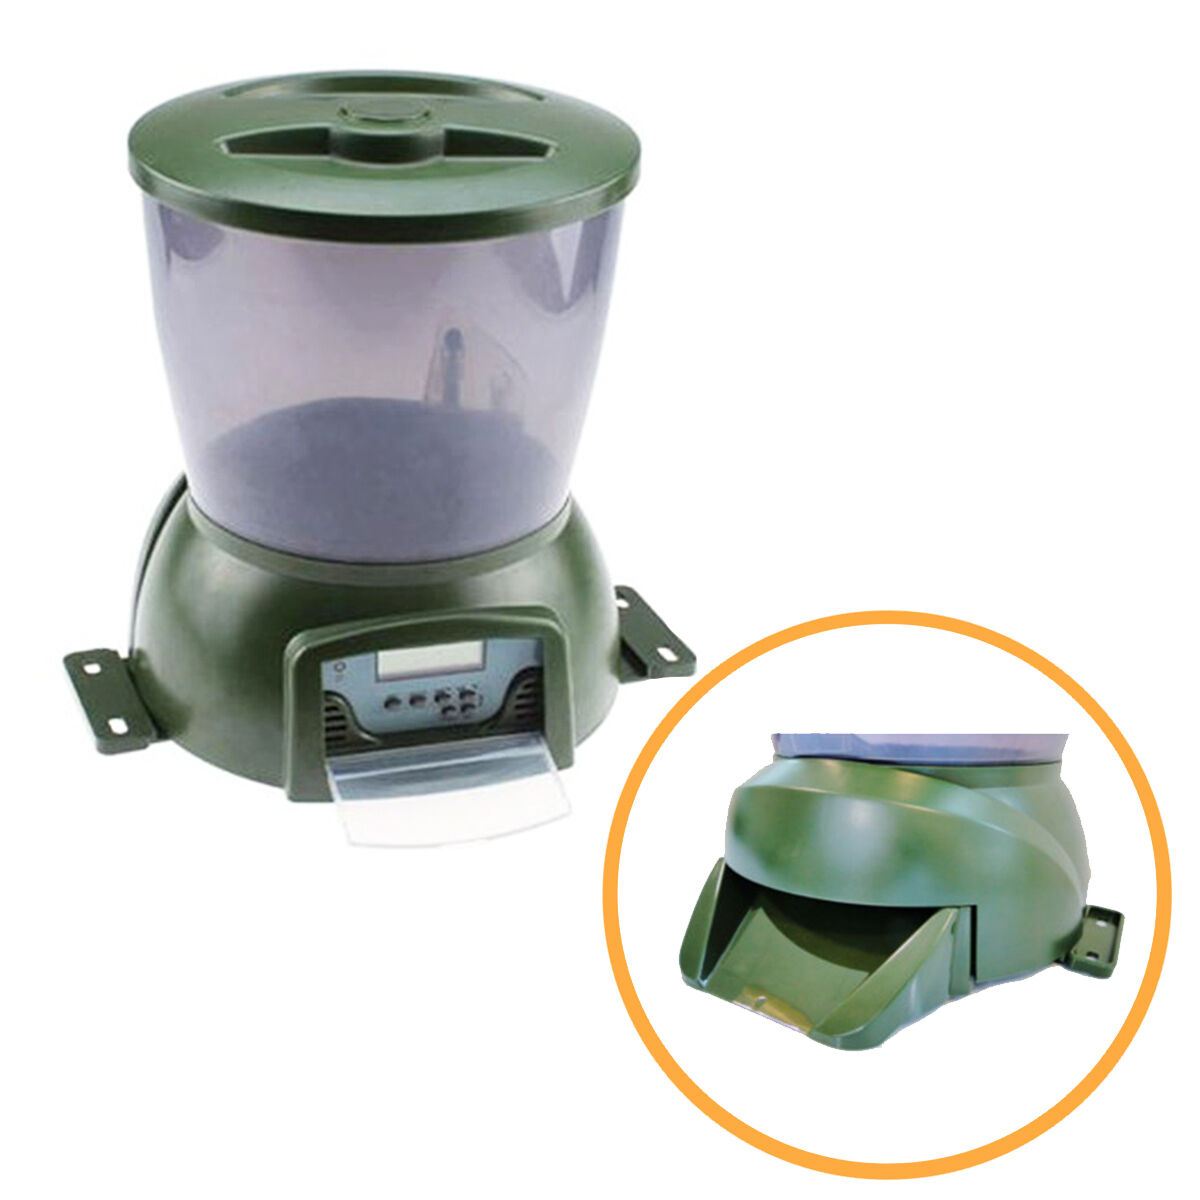 Automatic Pond Fish Food Feeder | Holiday Koi Feed Timer Auto Pellet Dispenser